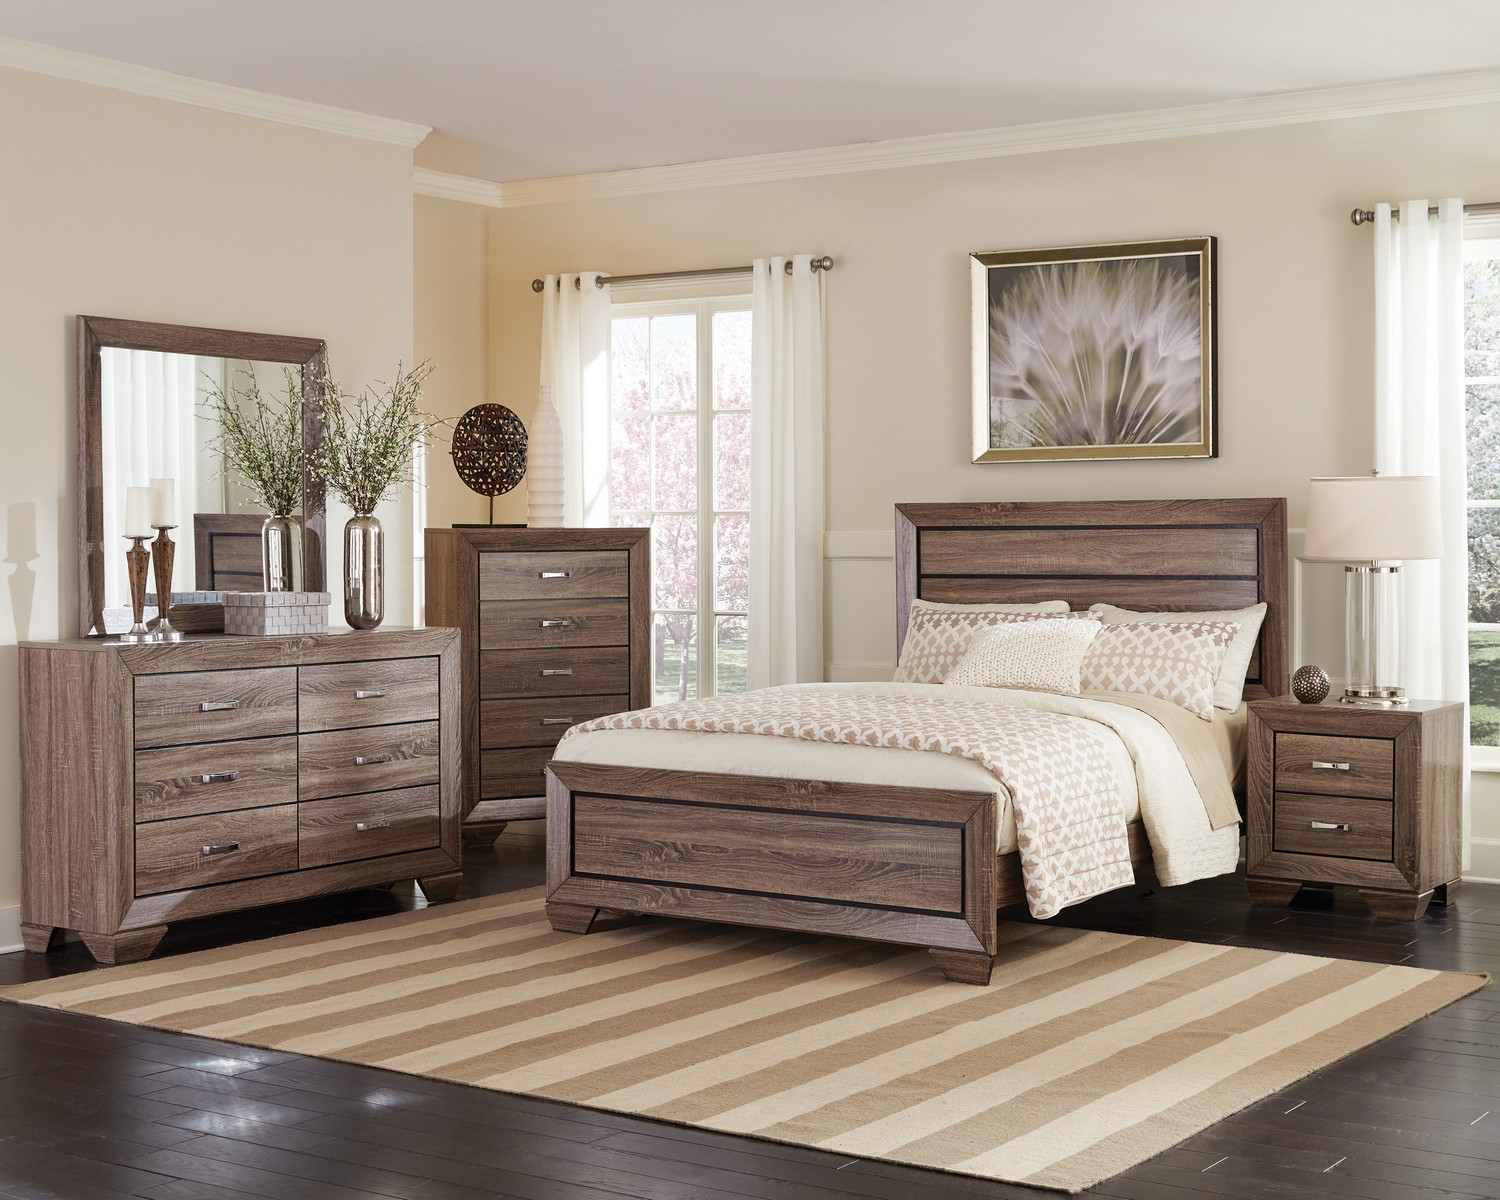 Coaster Kauffman Bedroom Collection - Washed Taupe